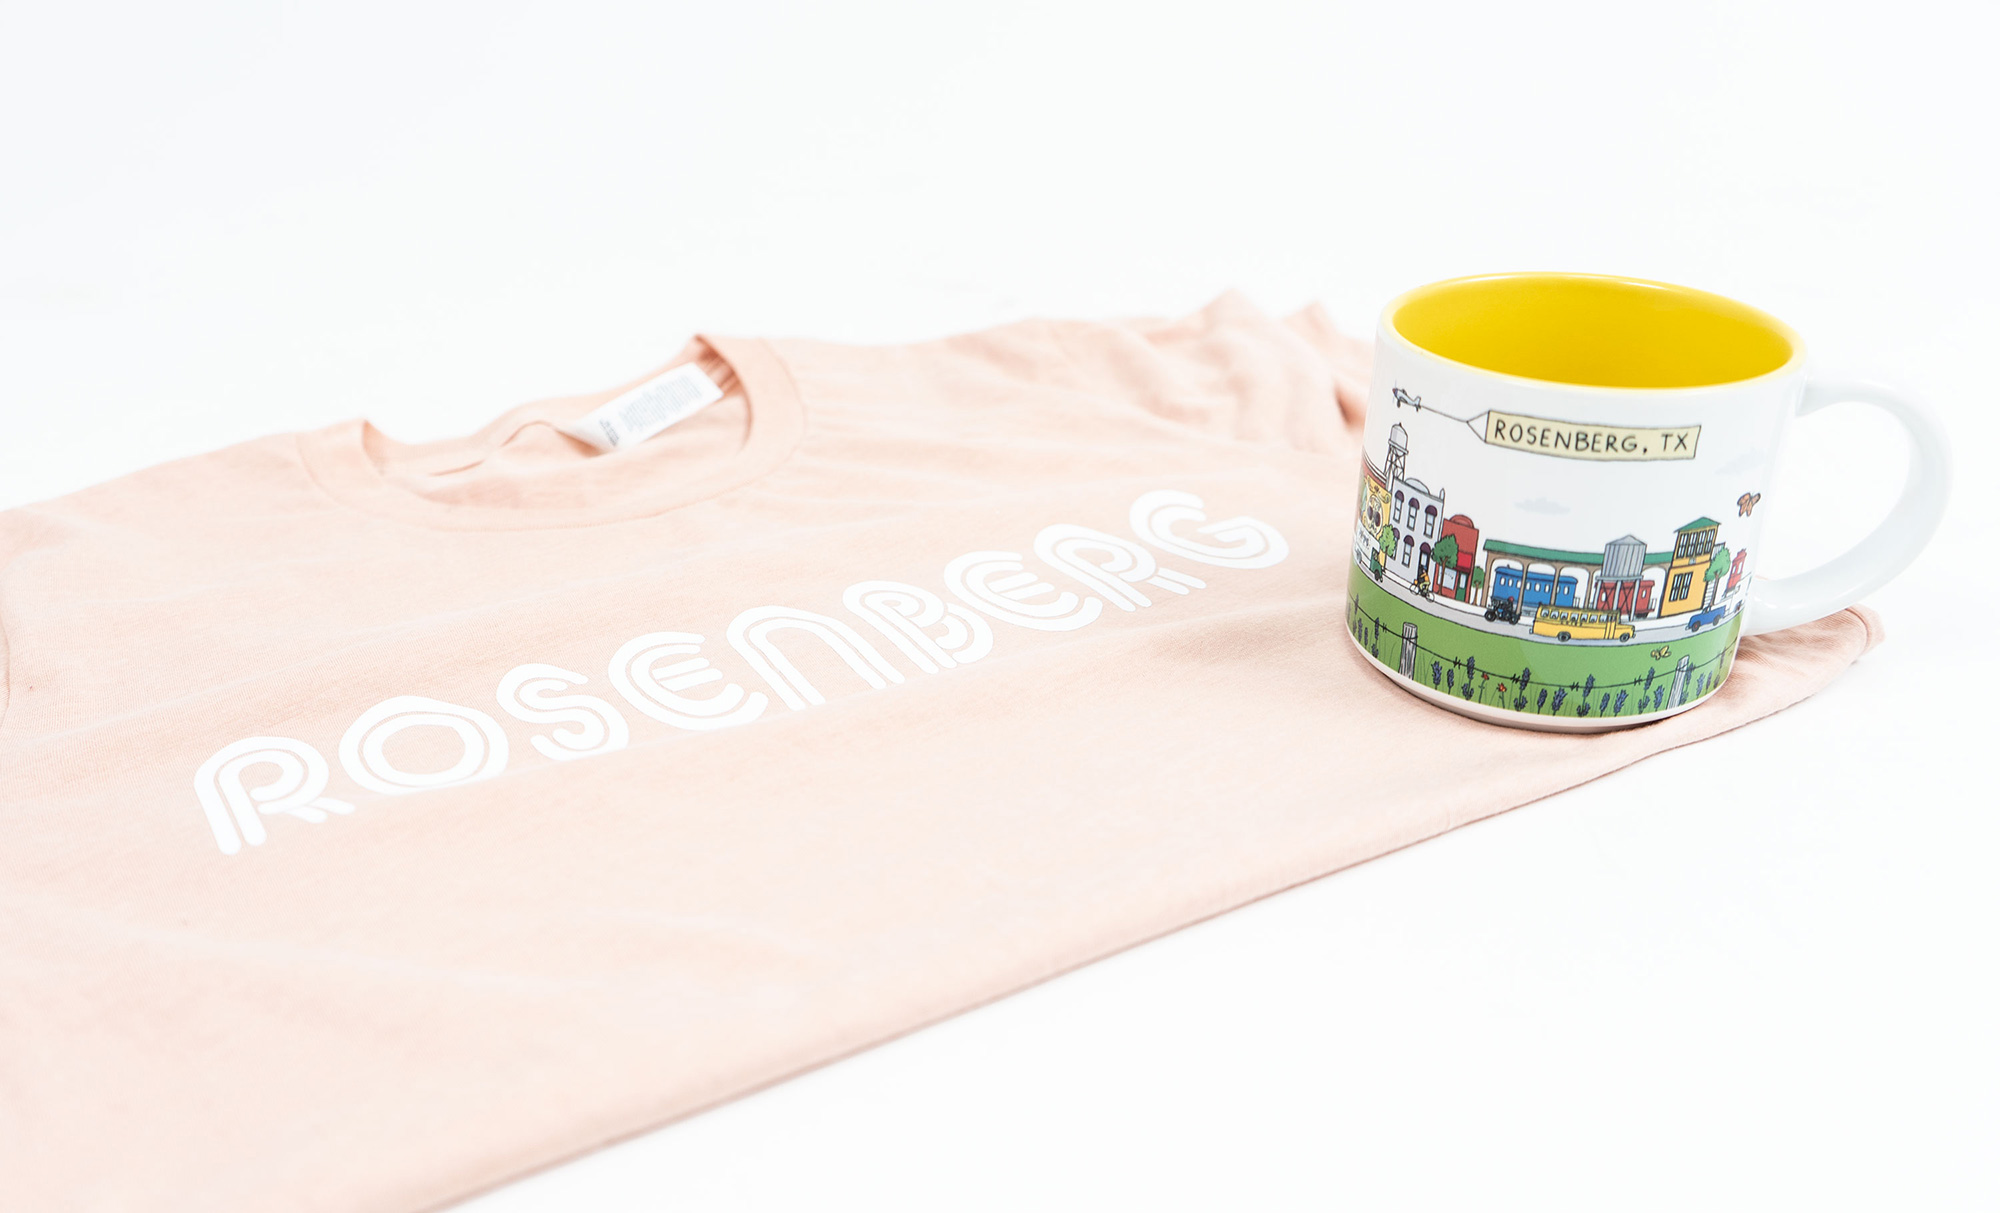 rosenberg-tx-mug-and-shirt-bundle-3